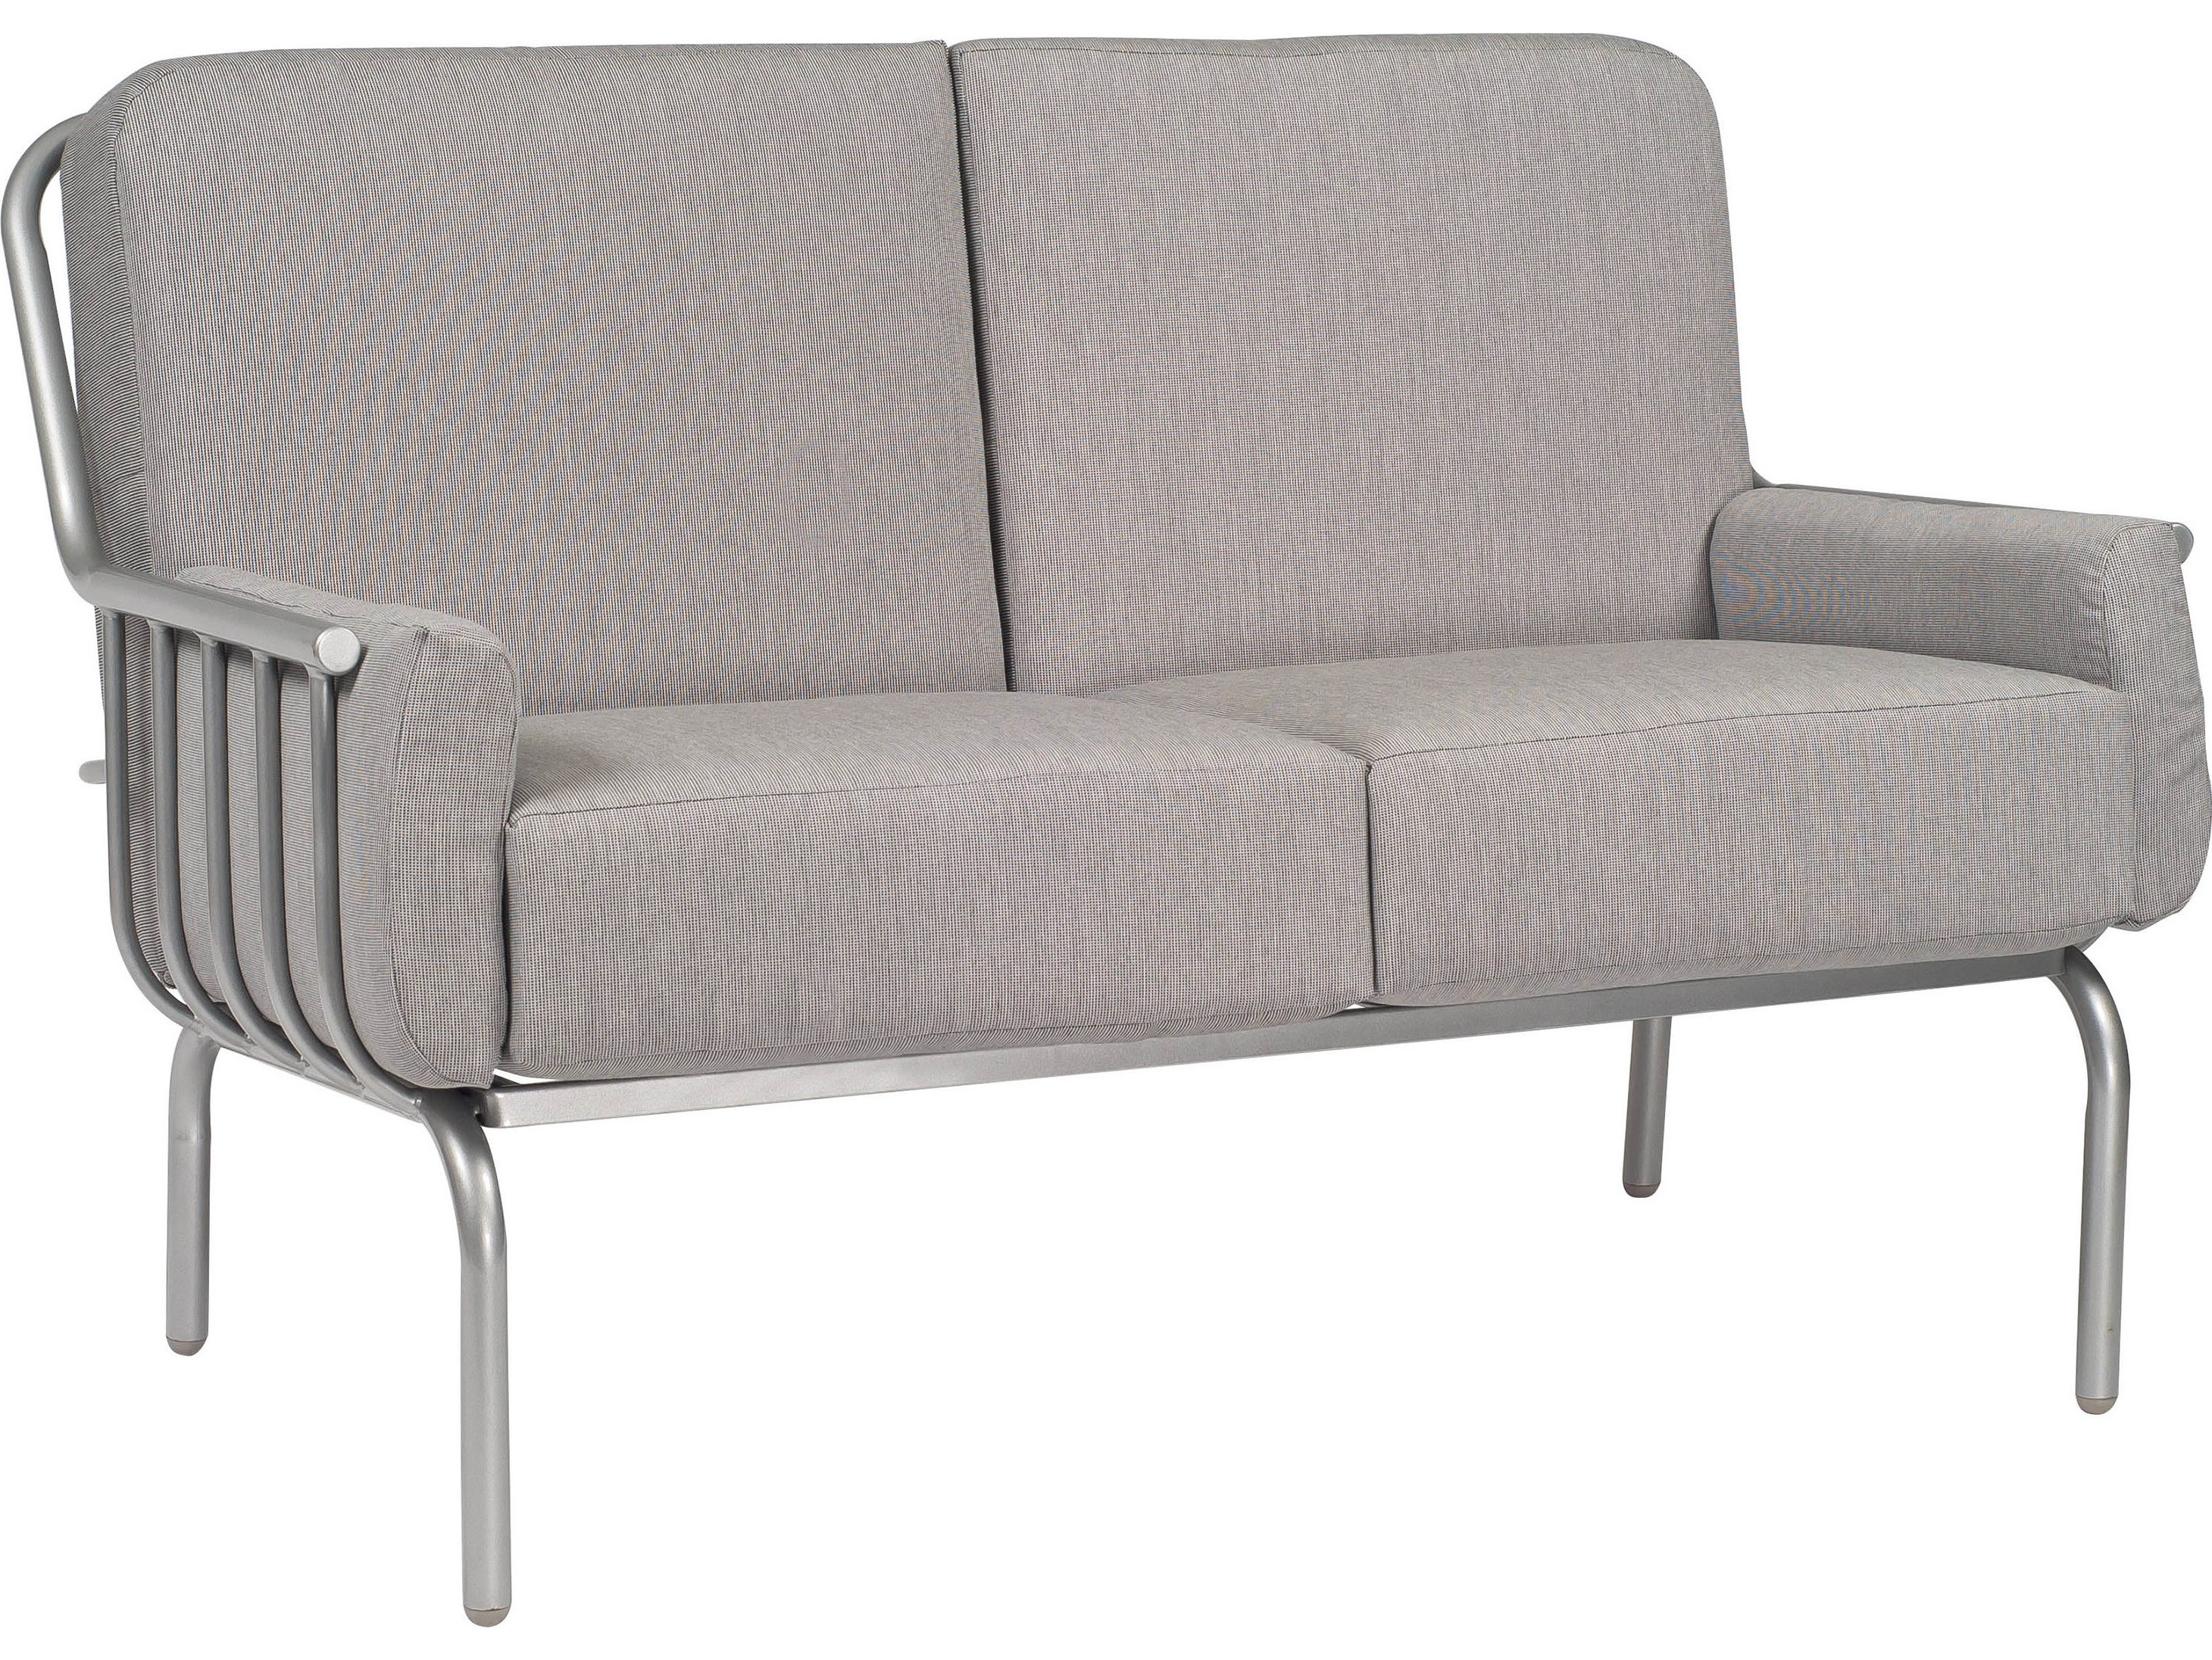 Woodard Uptown Loveseat Replacement Cushions 2h0019ch